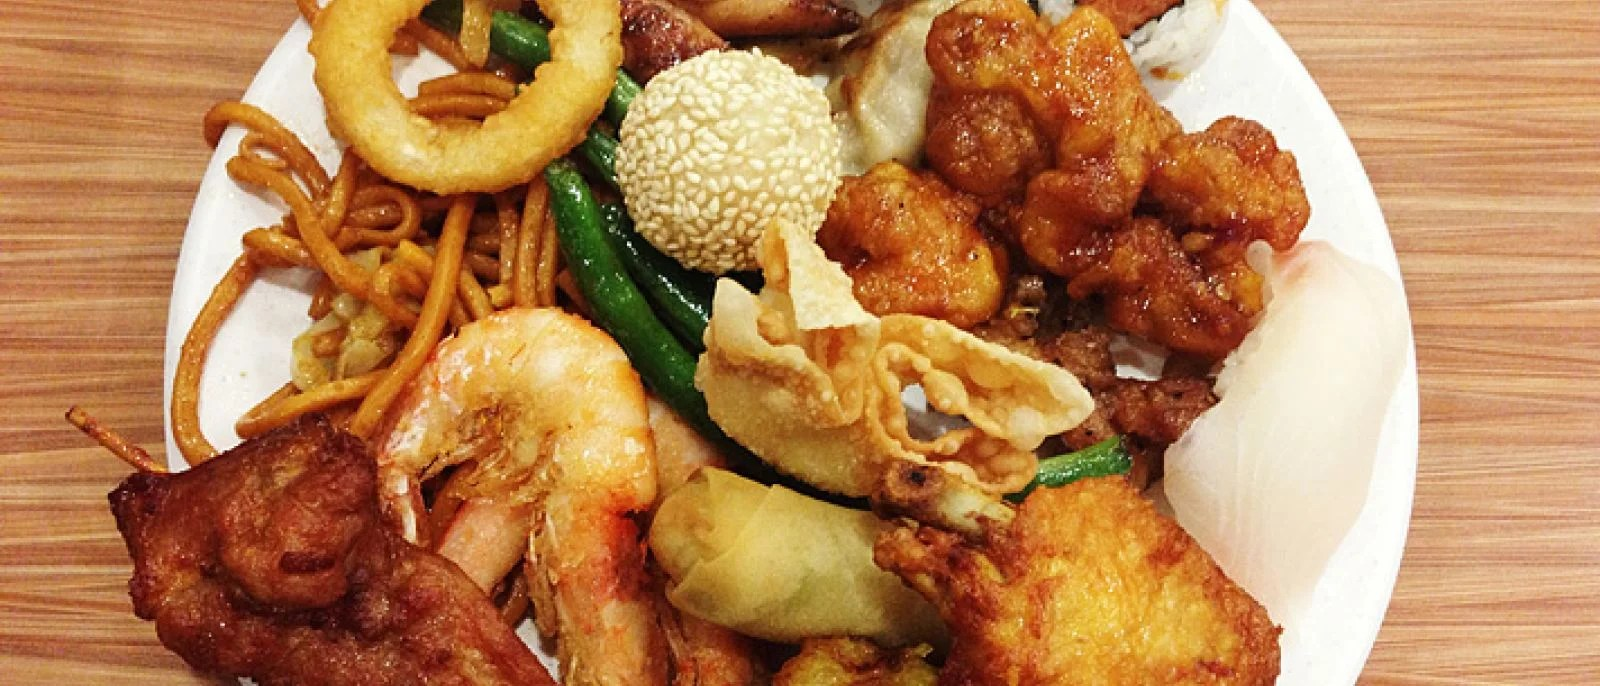 Buffets Chinois Les Meilleurs Buffets De Los Angeles Discover Los Angeles